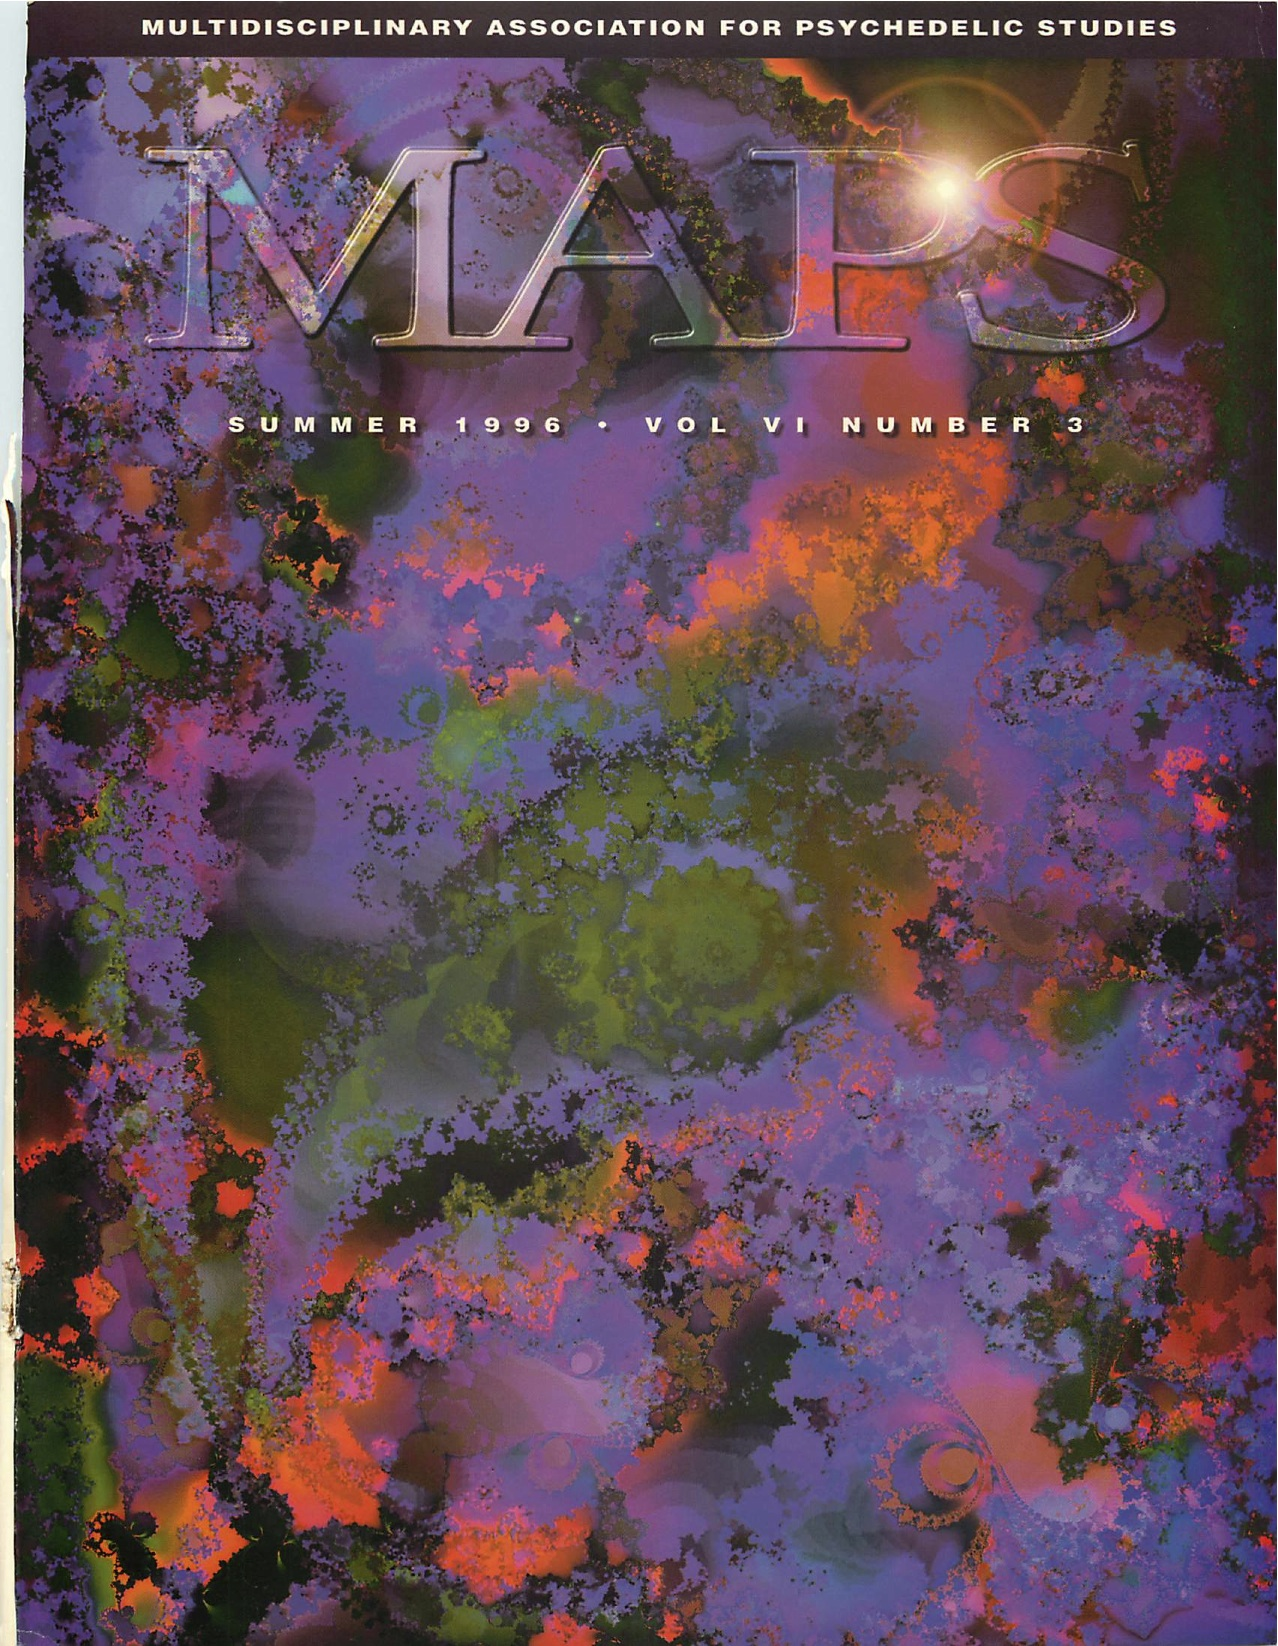 MAPS Bulletin Spring 1996: Vol. 06, No. 3